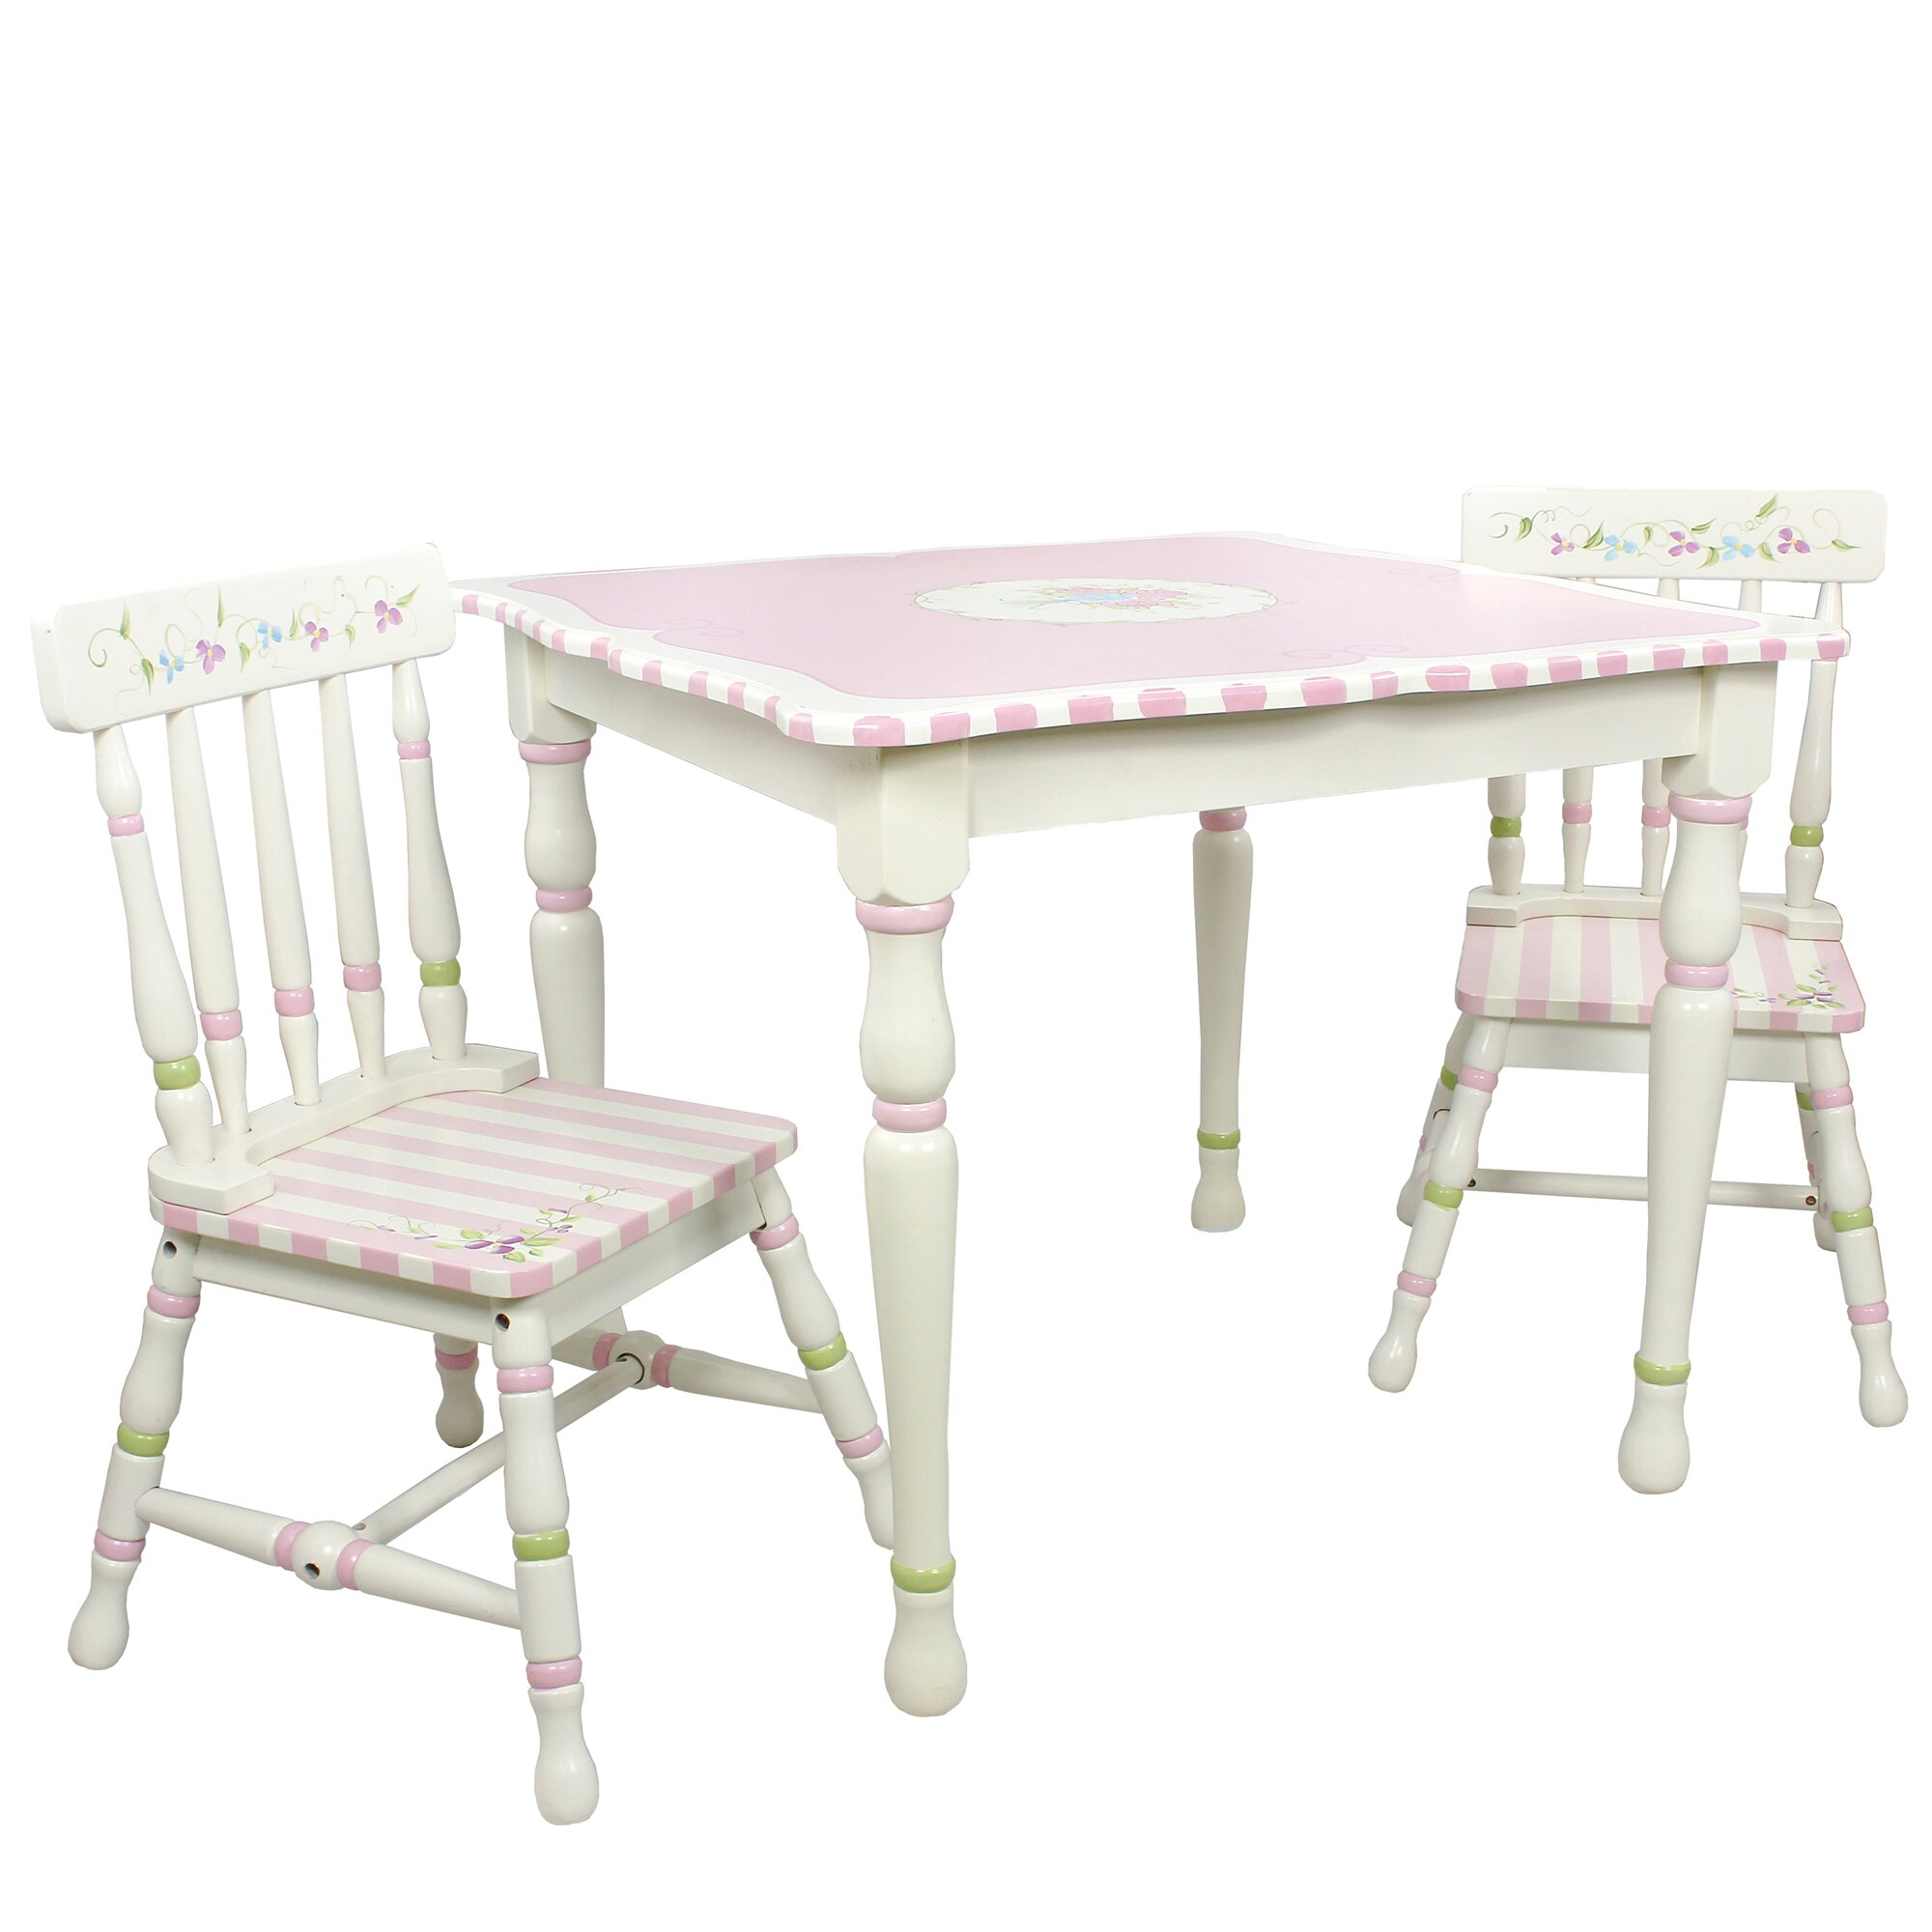 Fantasy fields bouquet 3 piece table chair set reviews for Regulation 85 table a